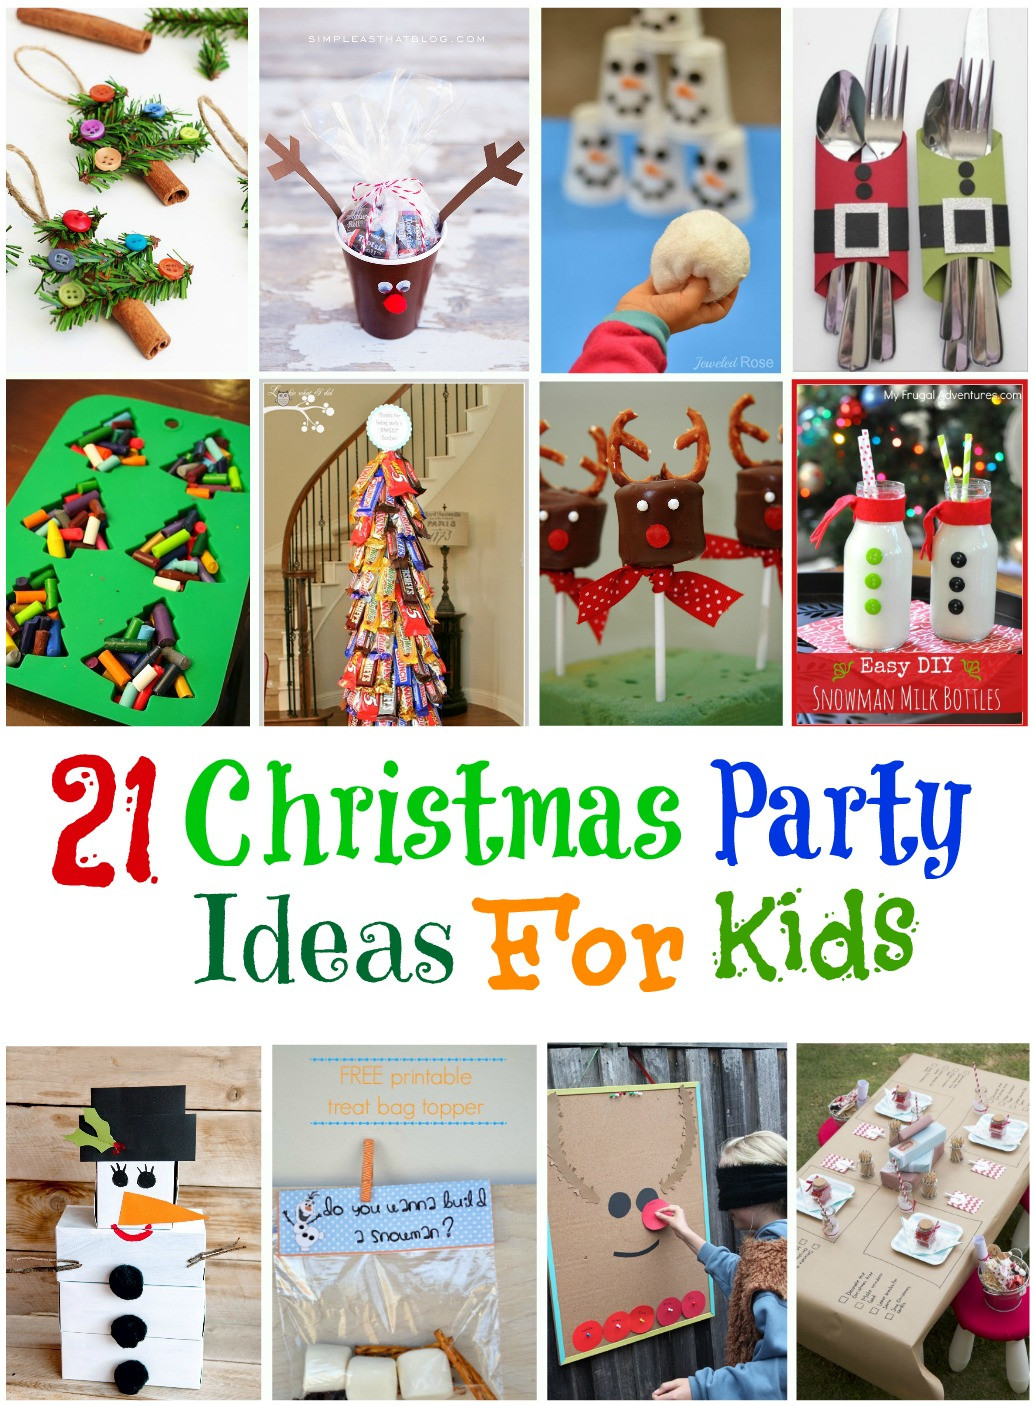 Youth Christmas Party Ideas  20 Frozen Birthday Party Ideas